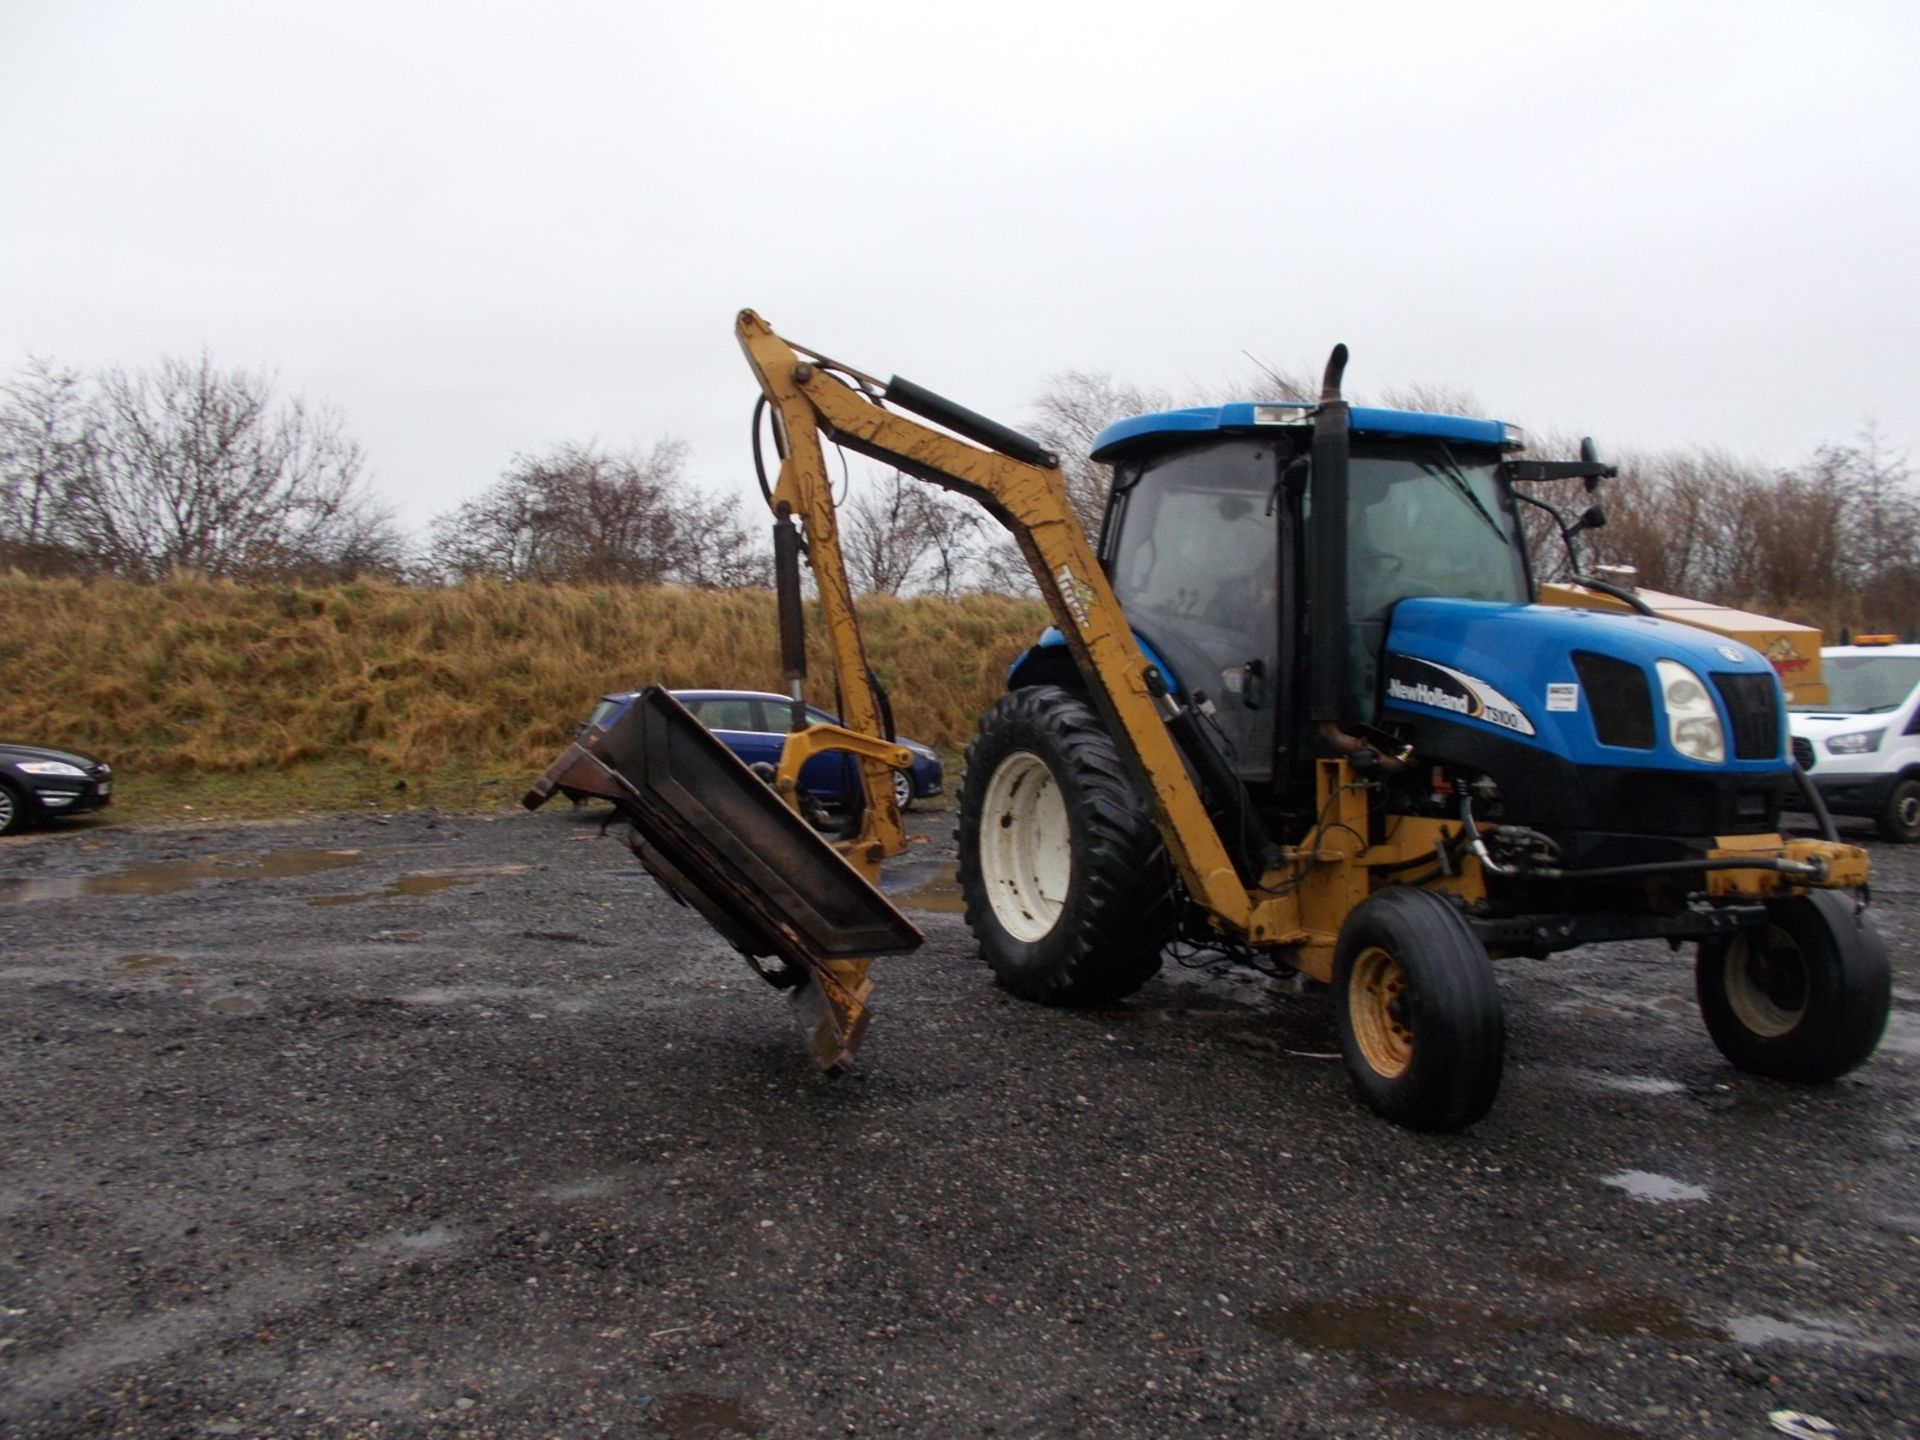 2003 NEW HOLLAND TS100A TRACTOR WITH MOWER ATTACHMENT, 4.5 LITRE 100HP TURBO DIESEL *PLUS VAT* - Image 8 of 24